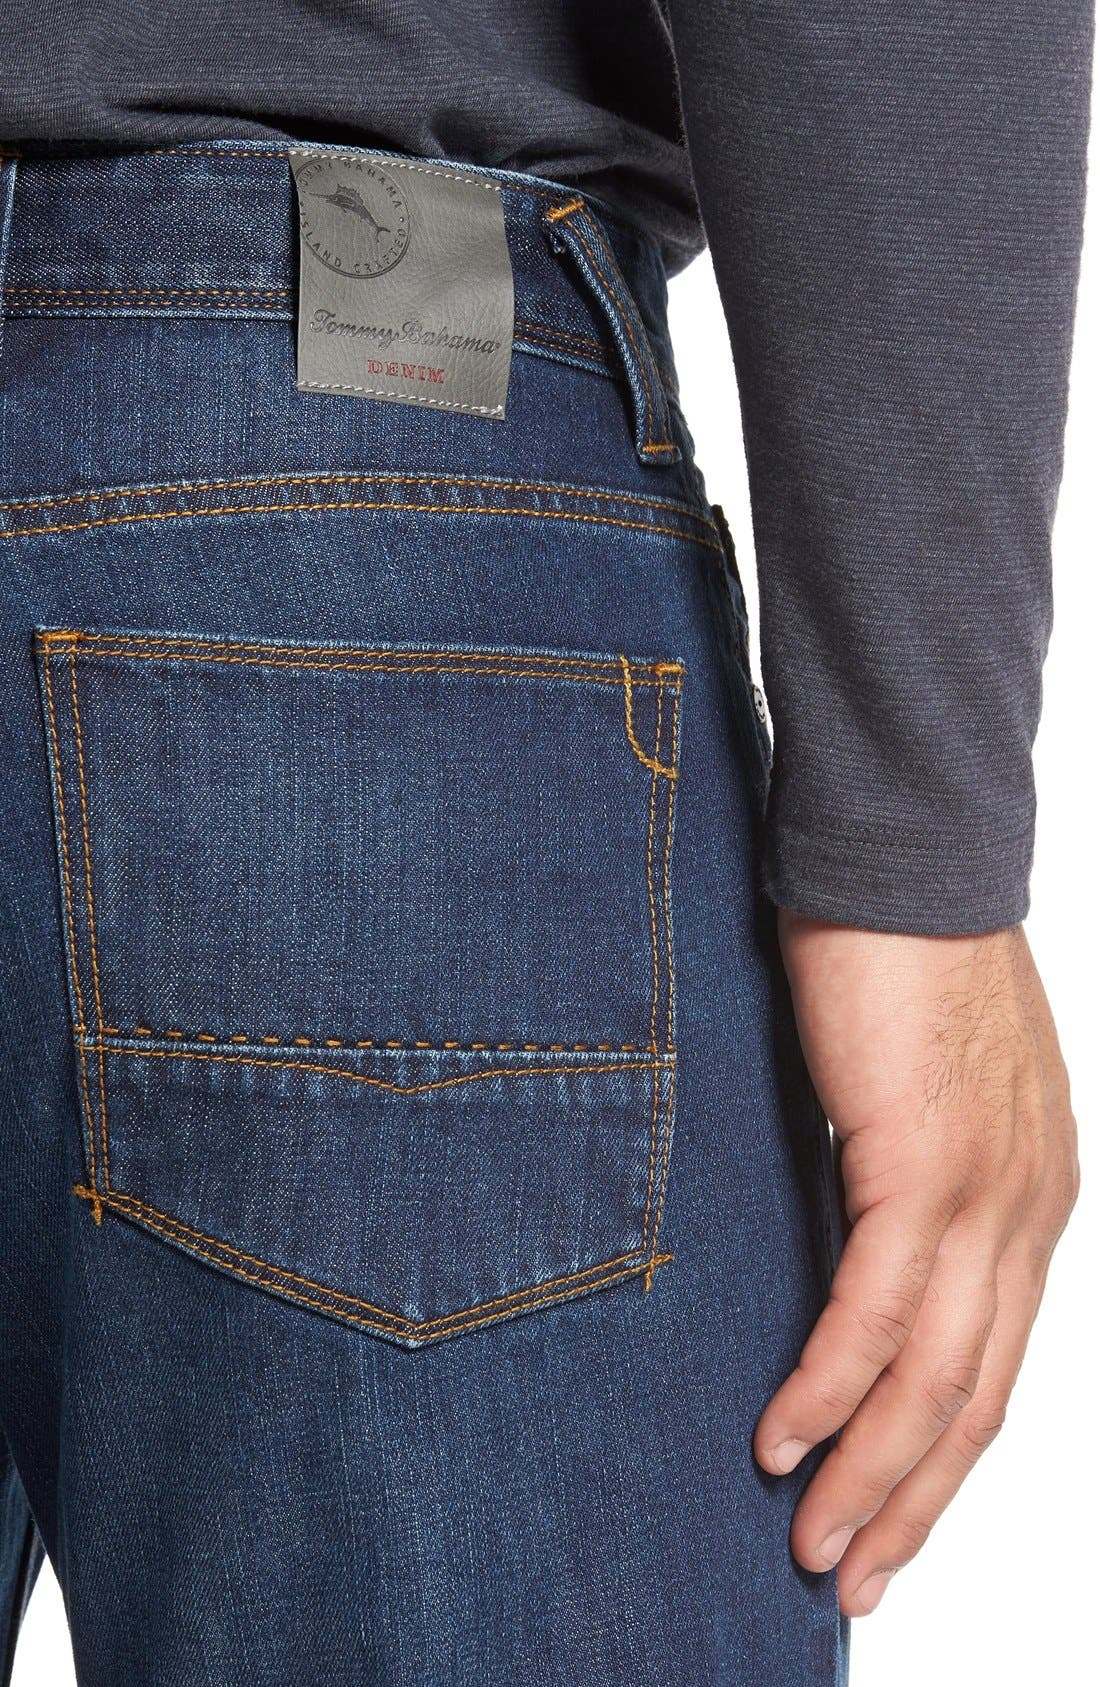 'Santorini' Relaxed Fit Jeans,                             Alternate thumbnail 4, color,                             Dark Indigo Wash